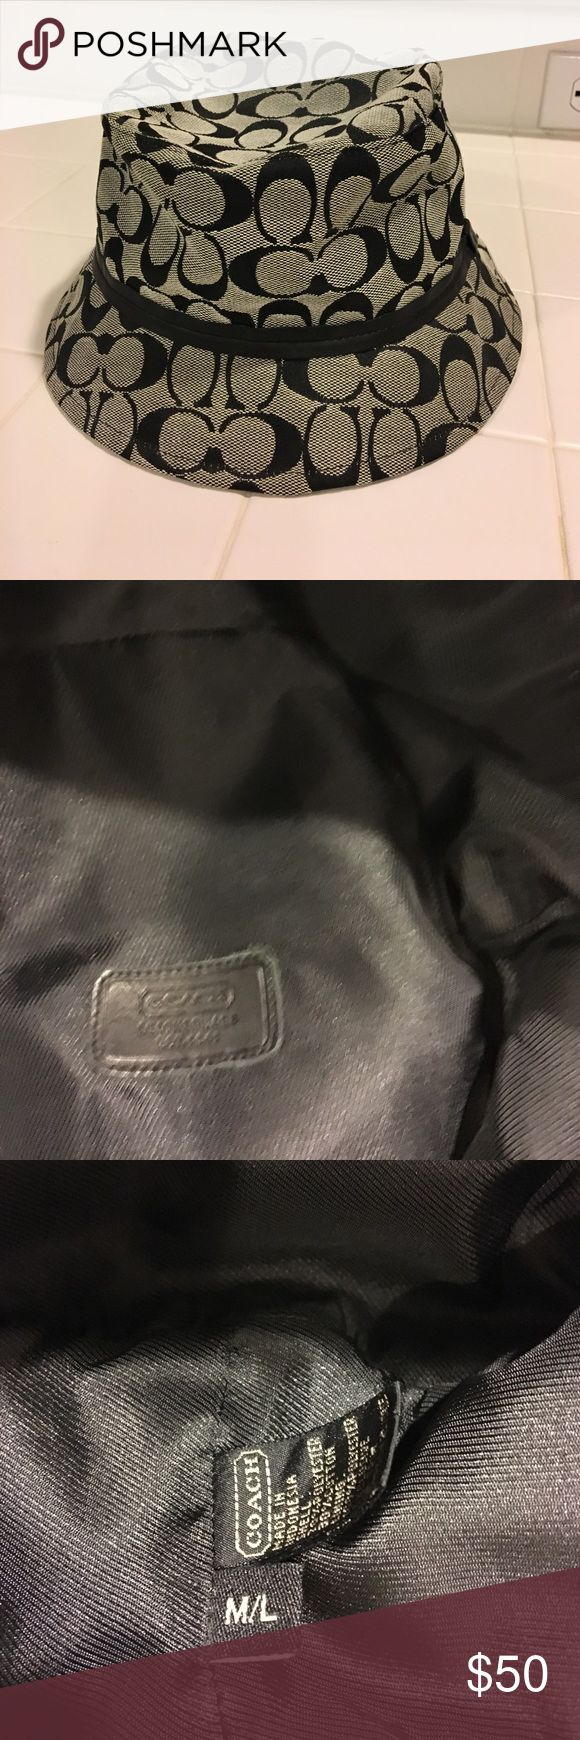 Coach hat Coach hat. Used but in Great condition Coach Accessories Hats